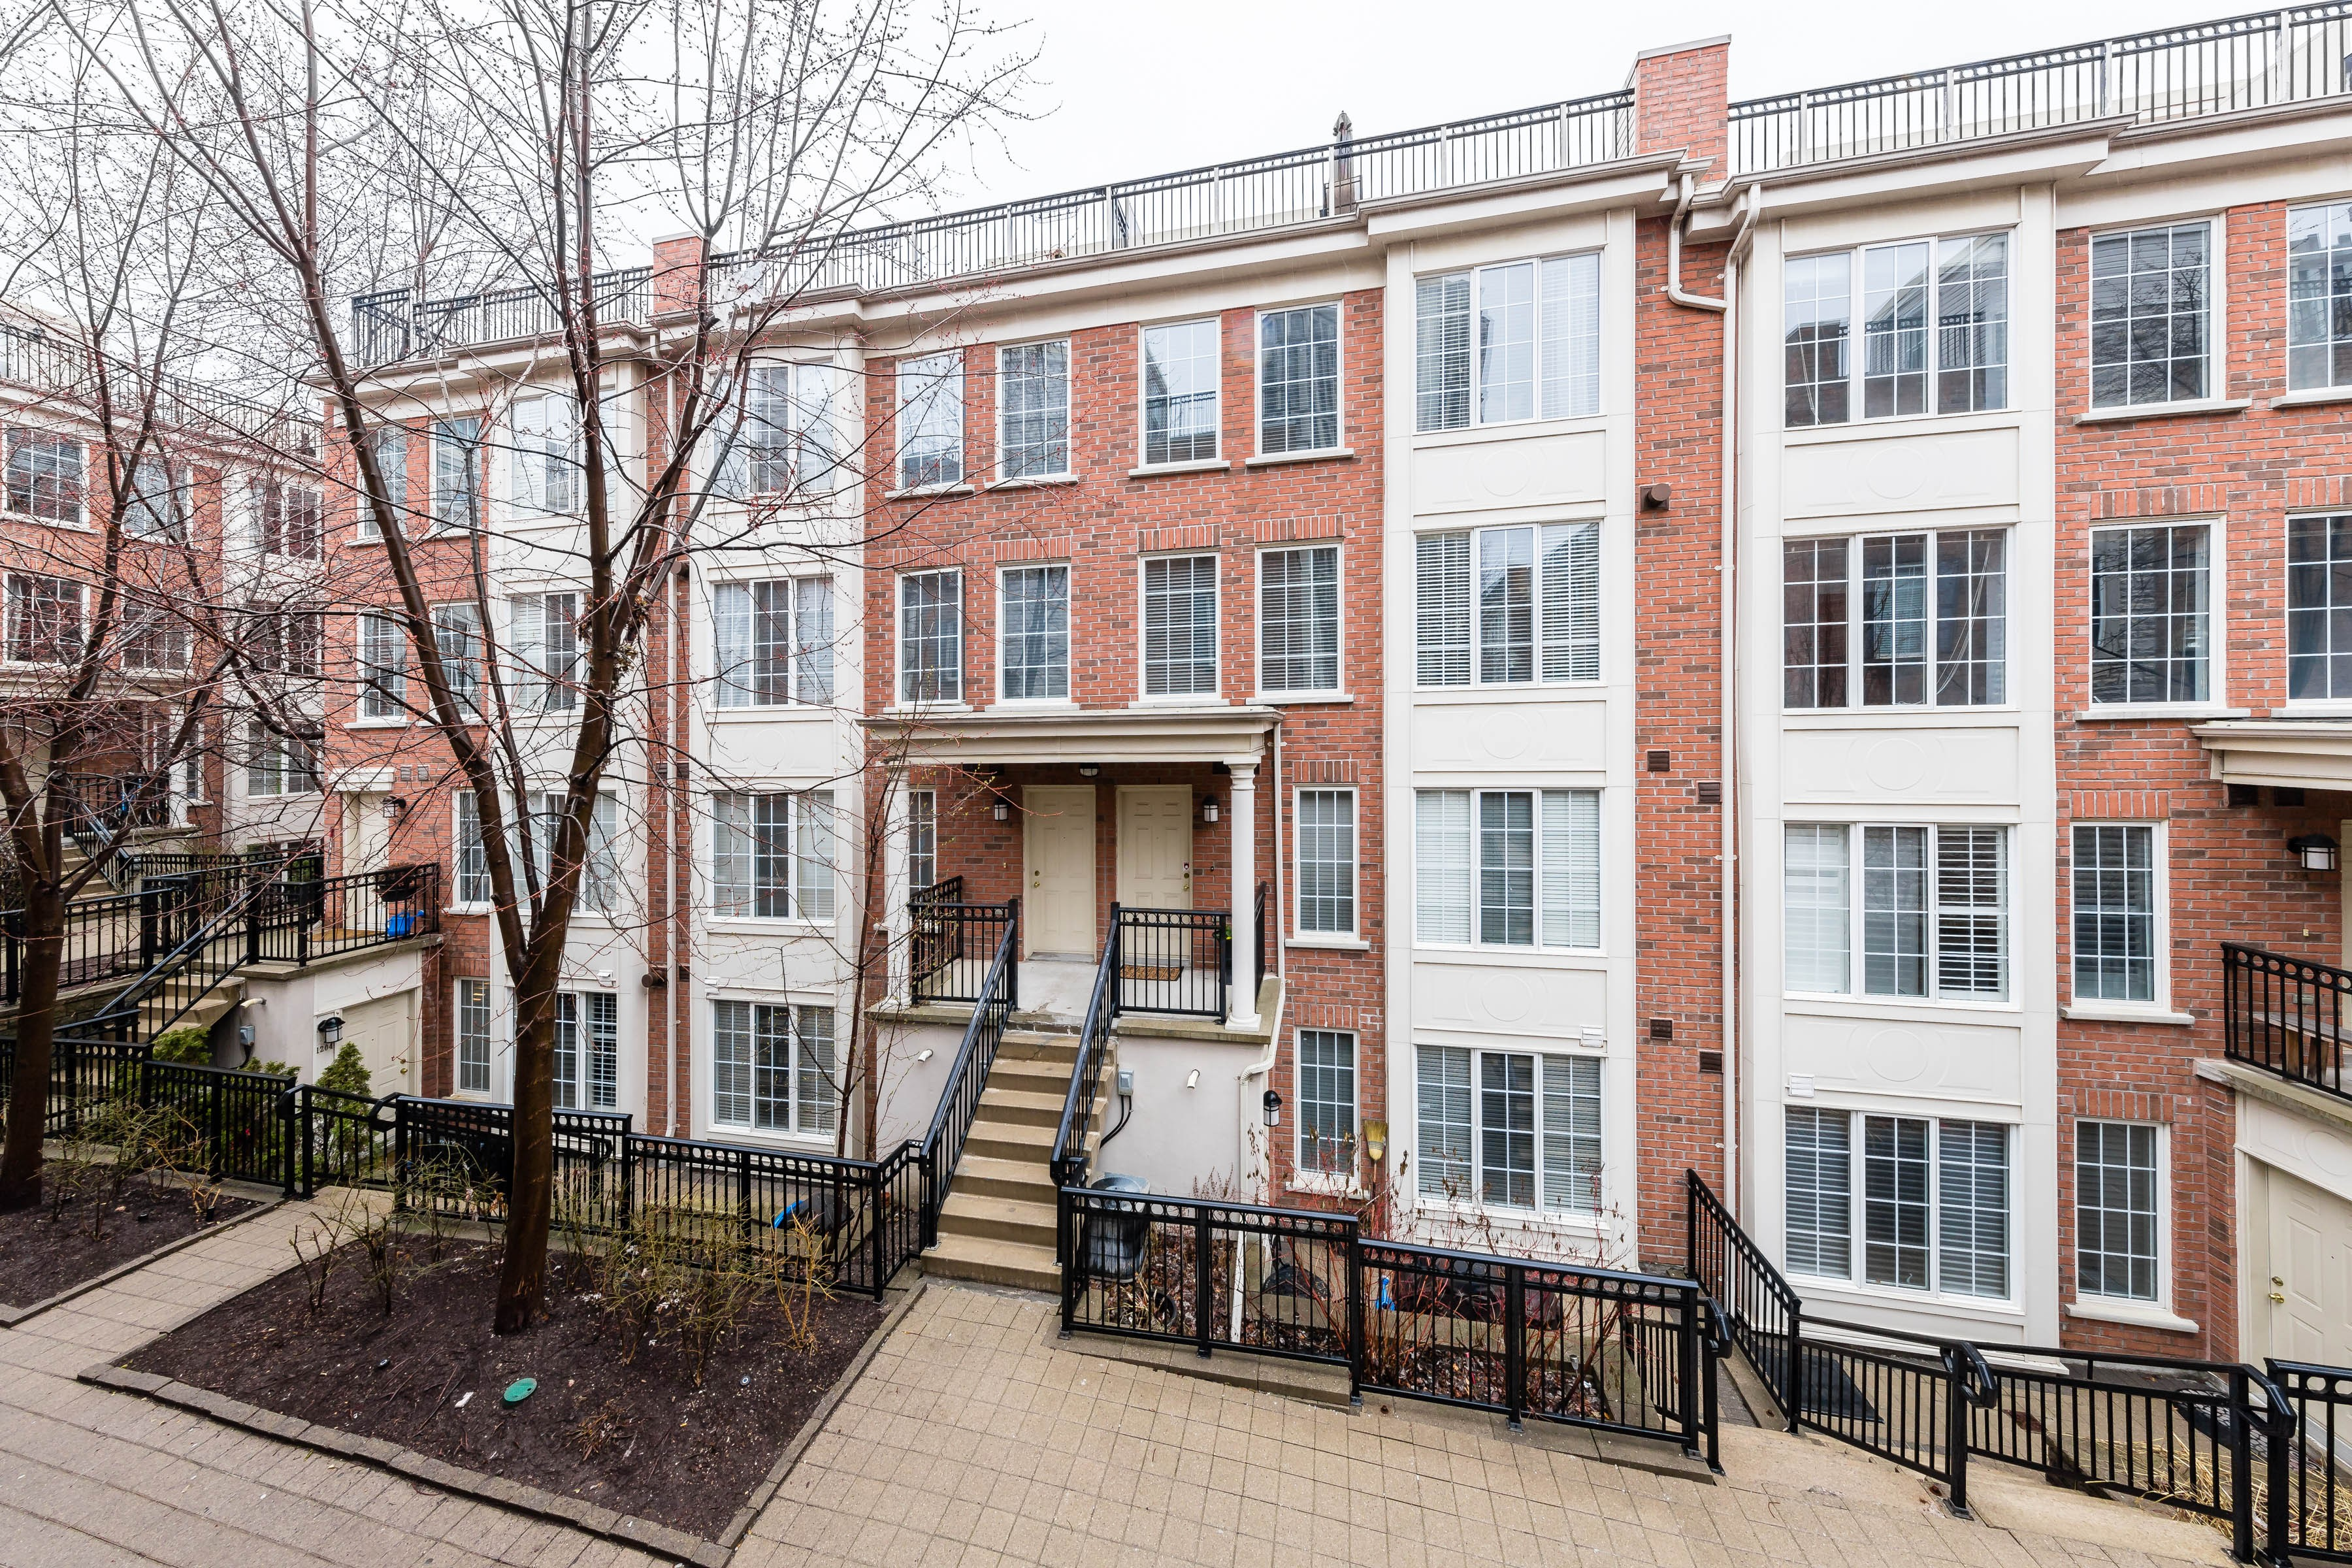 Toronto Centre Townhomes at 5 Everson Dr, Toronto 0